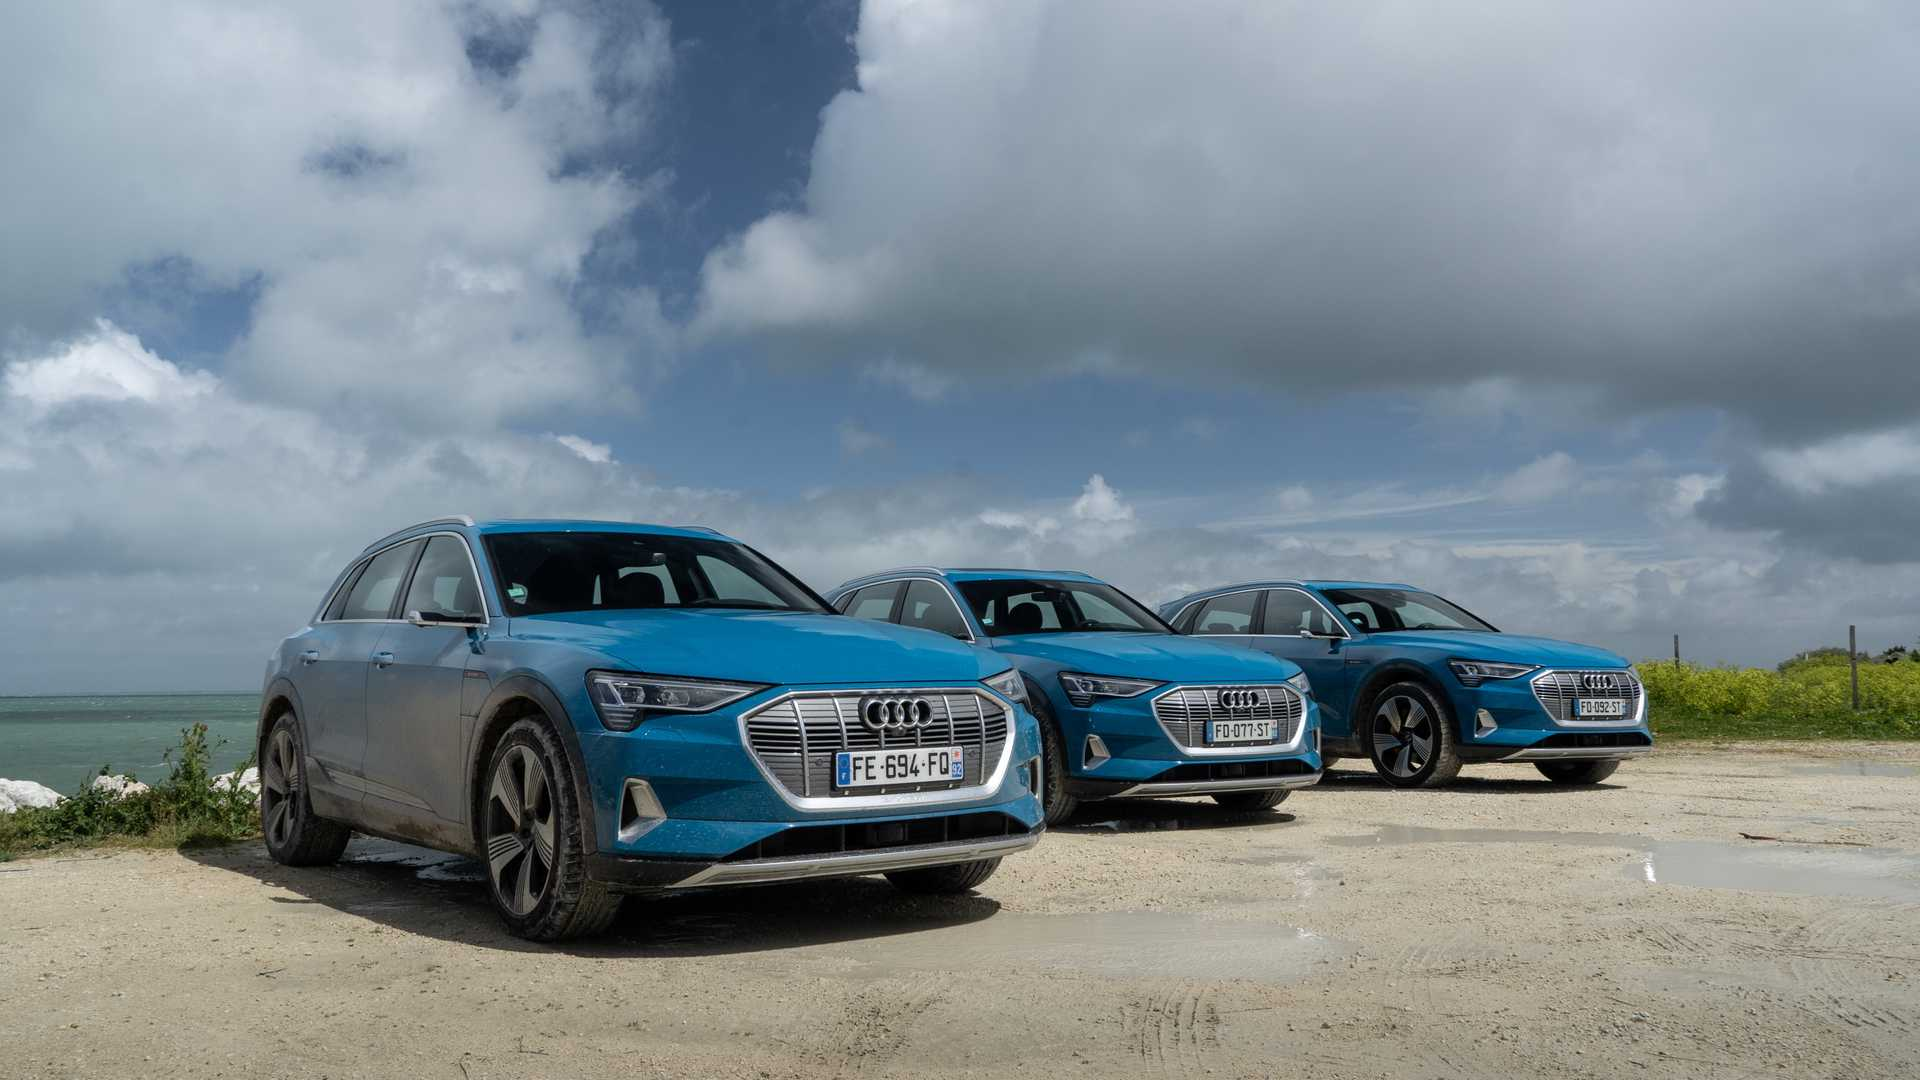 Some Customers Report 6 Month Extended Wait On Audi e-tron